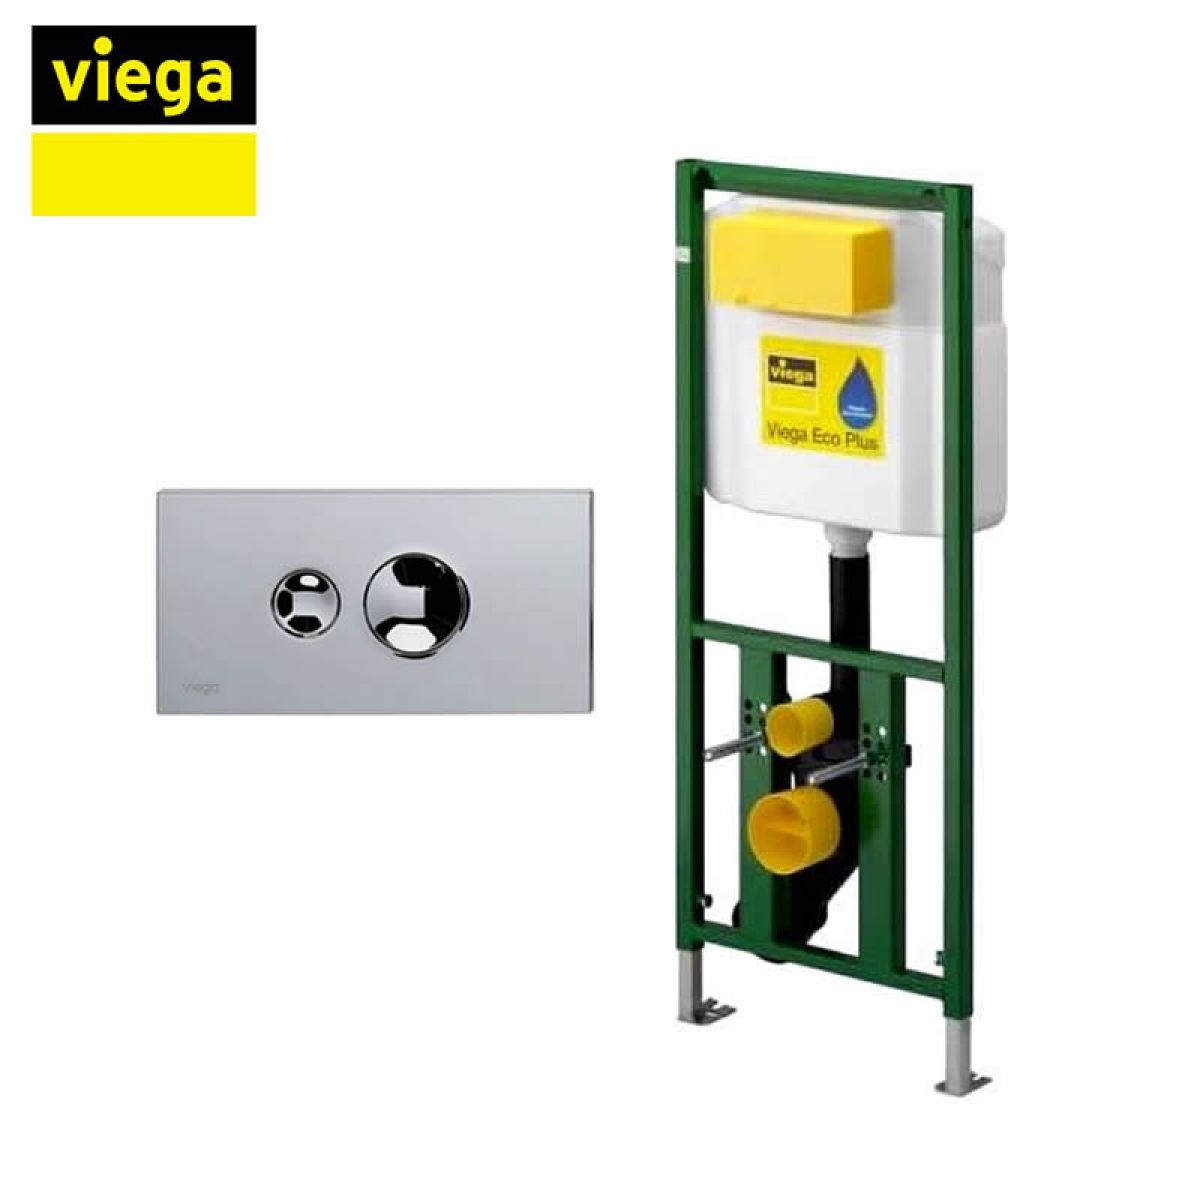 Viega S4 Eco Plus Framed Cistern And Visign For Style 10